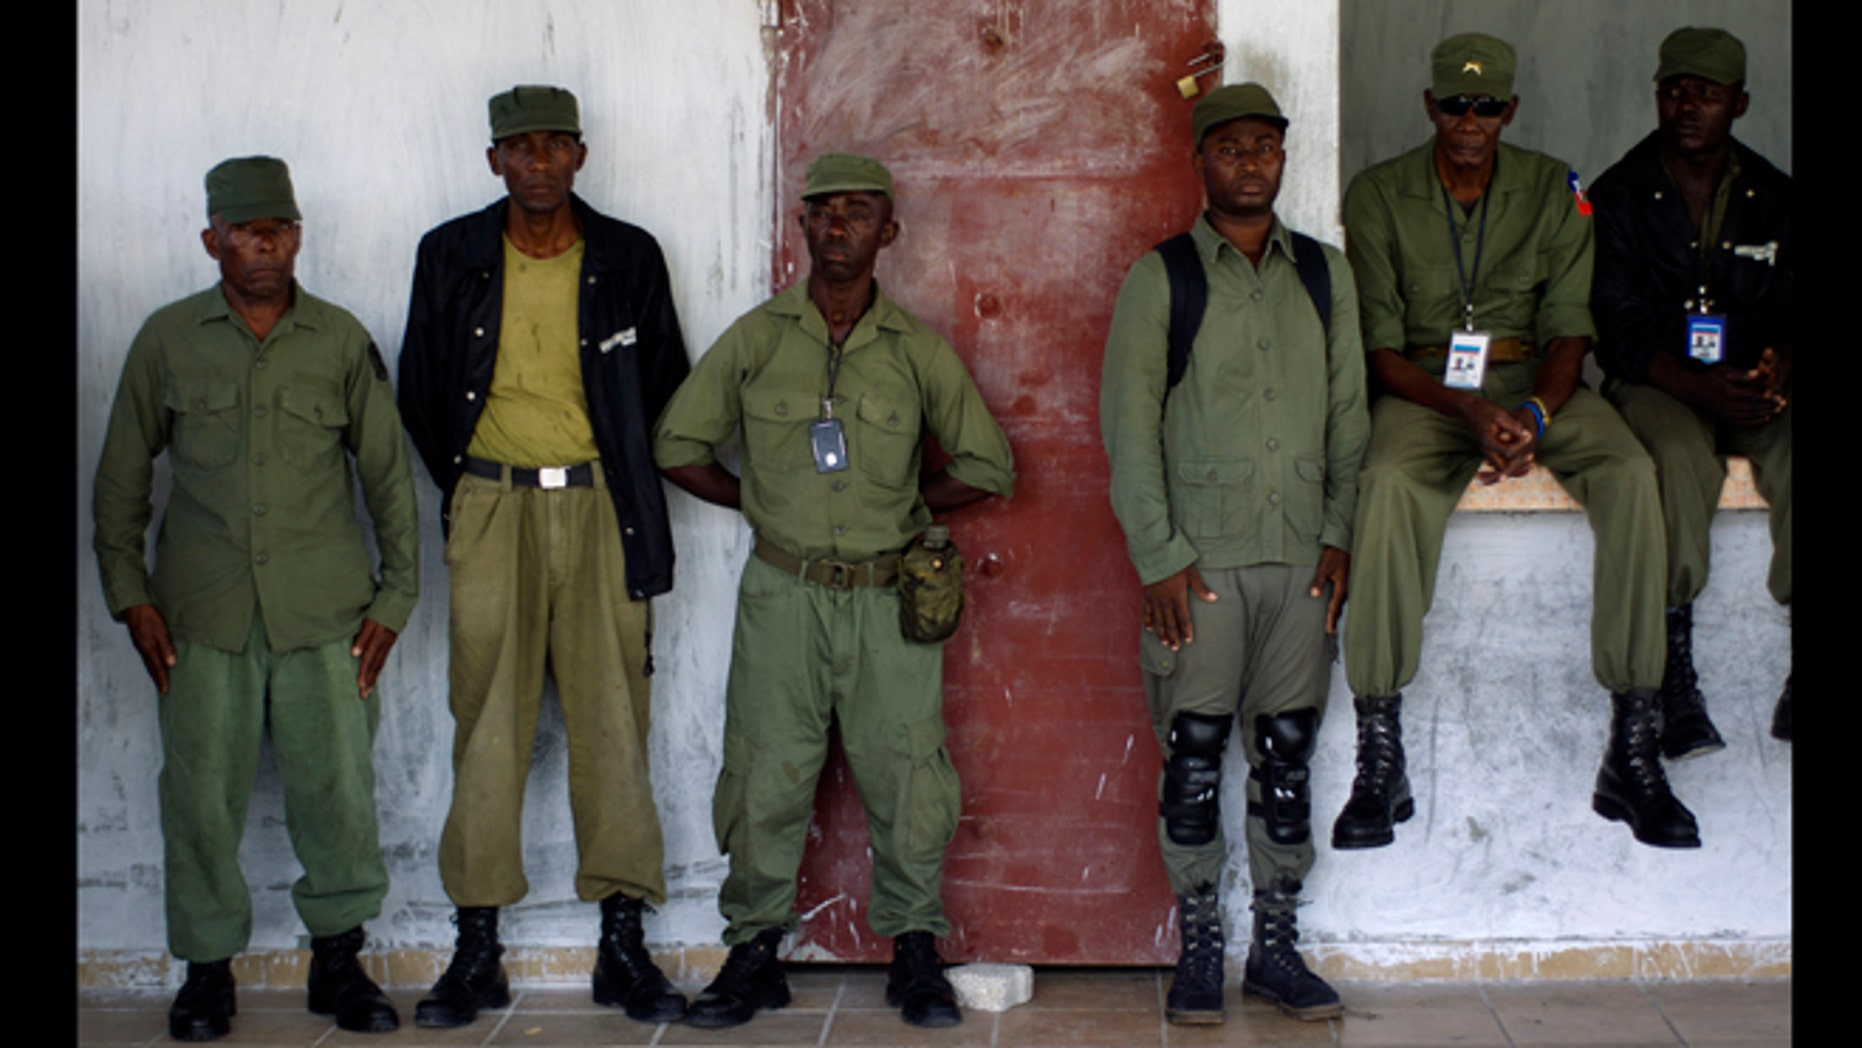 April 24, 2012: Members of the dissolved Haitian army and civilian volunteers listen to a military veteran during a press conference at an army barracks just outside Haiti's capital, Port-au-prince.